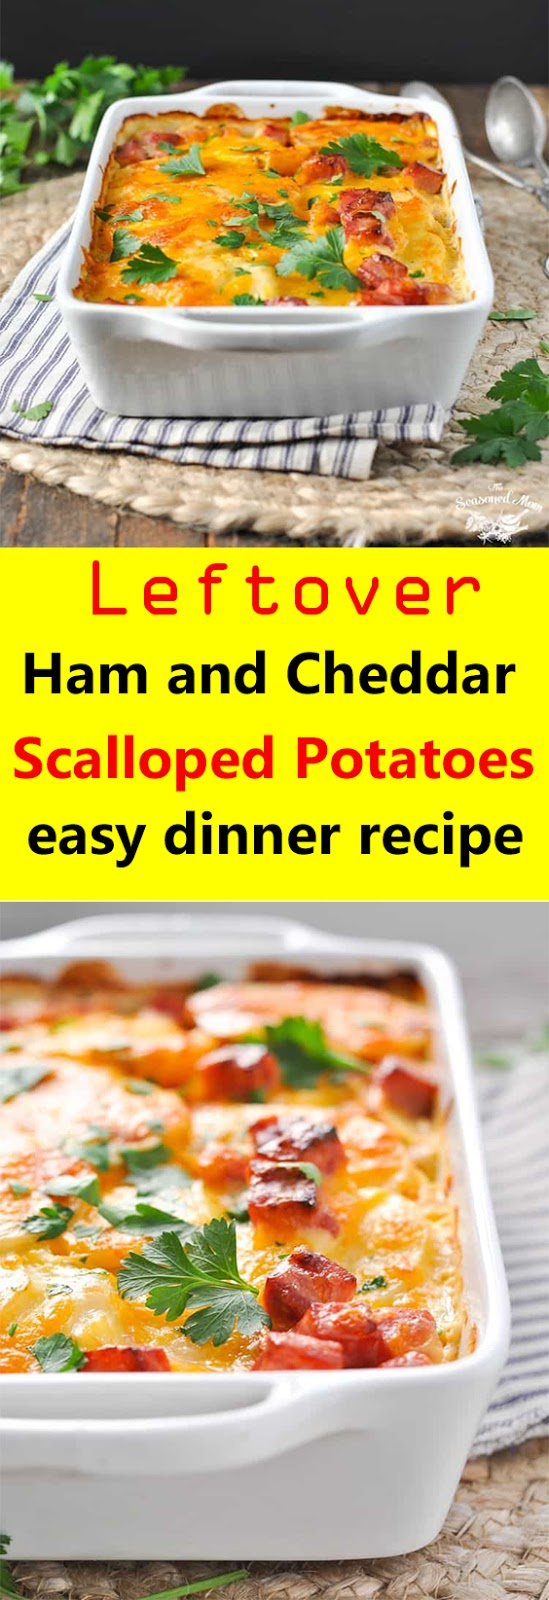 Leftover Ham and Cheddar Scalloped Potatoes